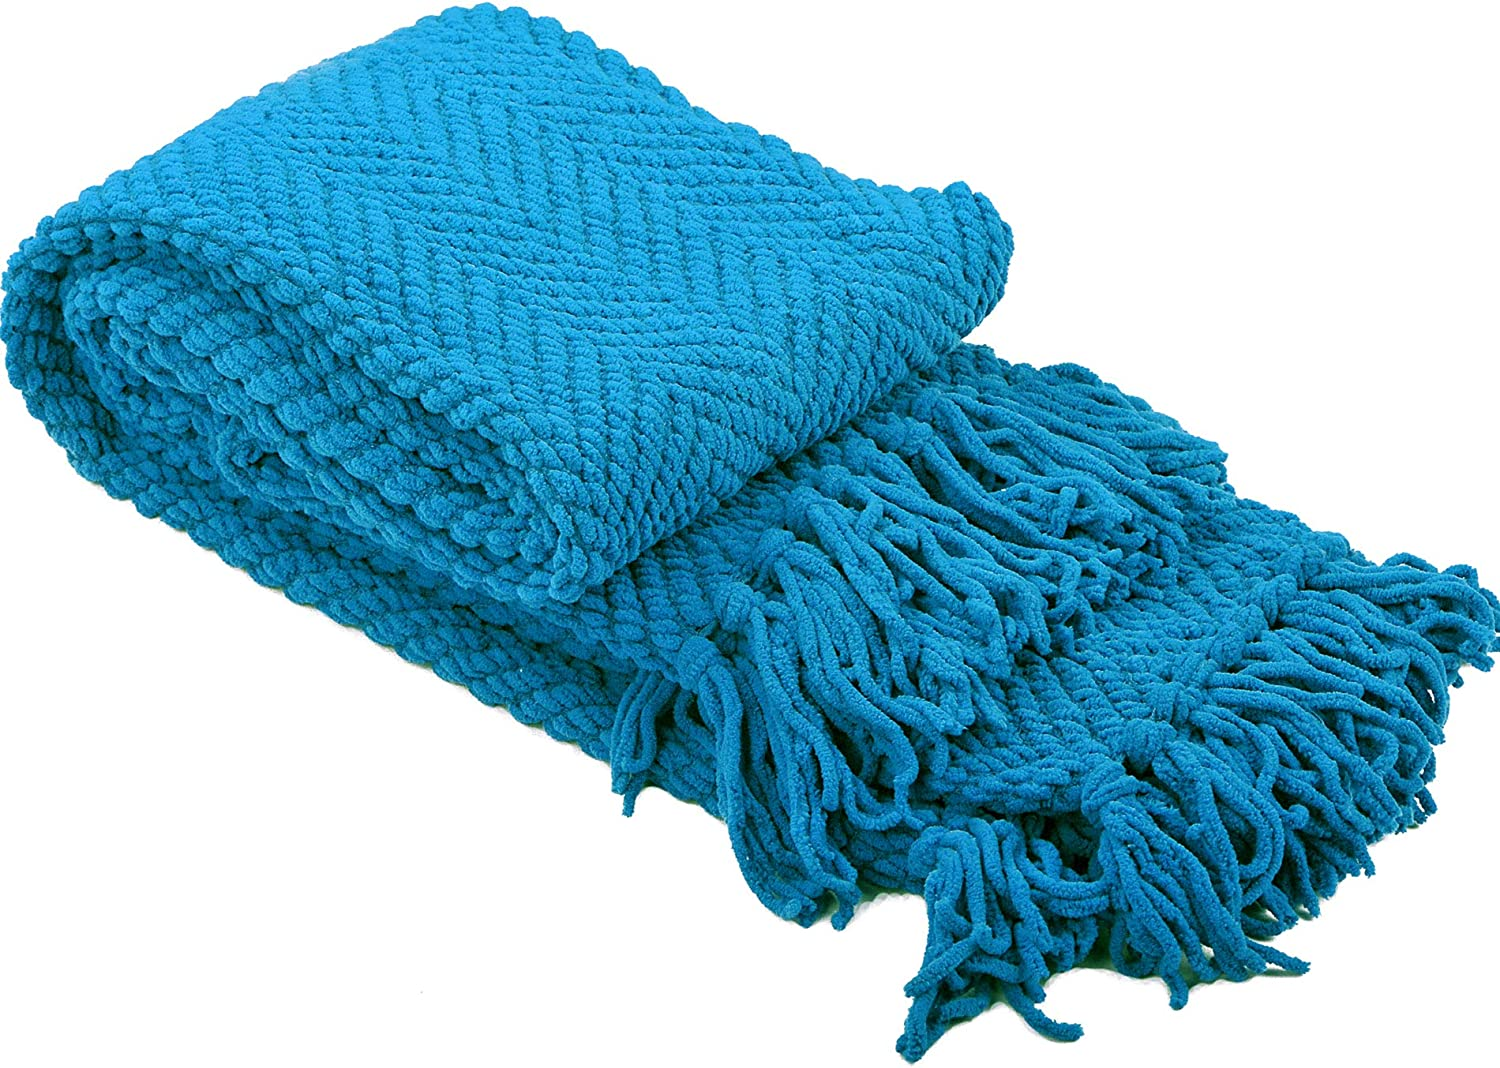 50 x 60 Home Soft Things Knitted Tweed Throw Couch Cover Blanket Aquamarine